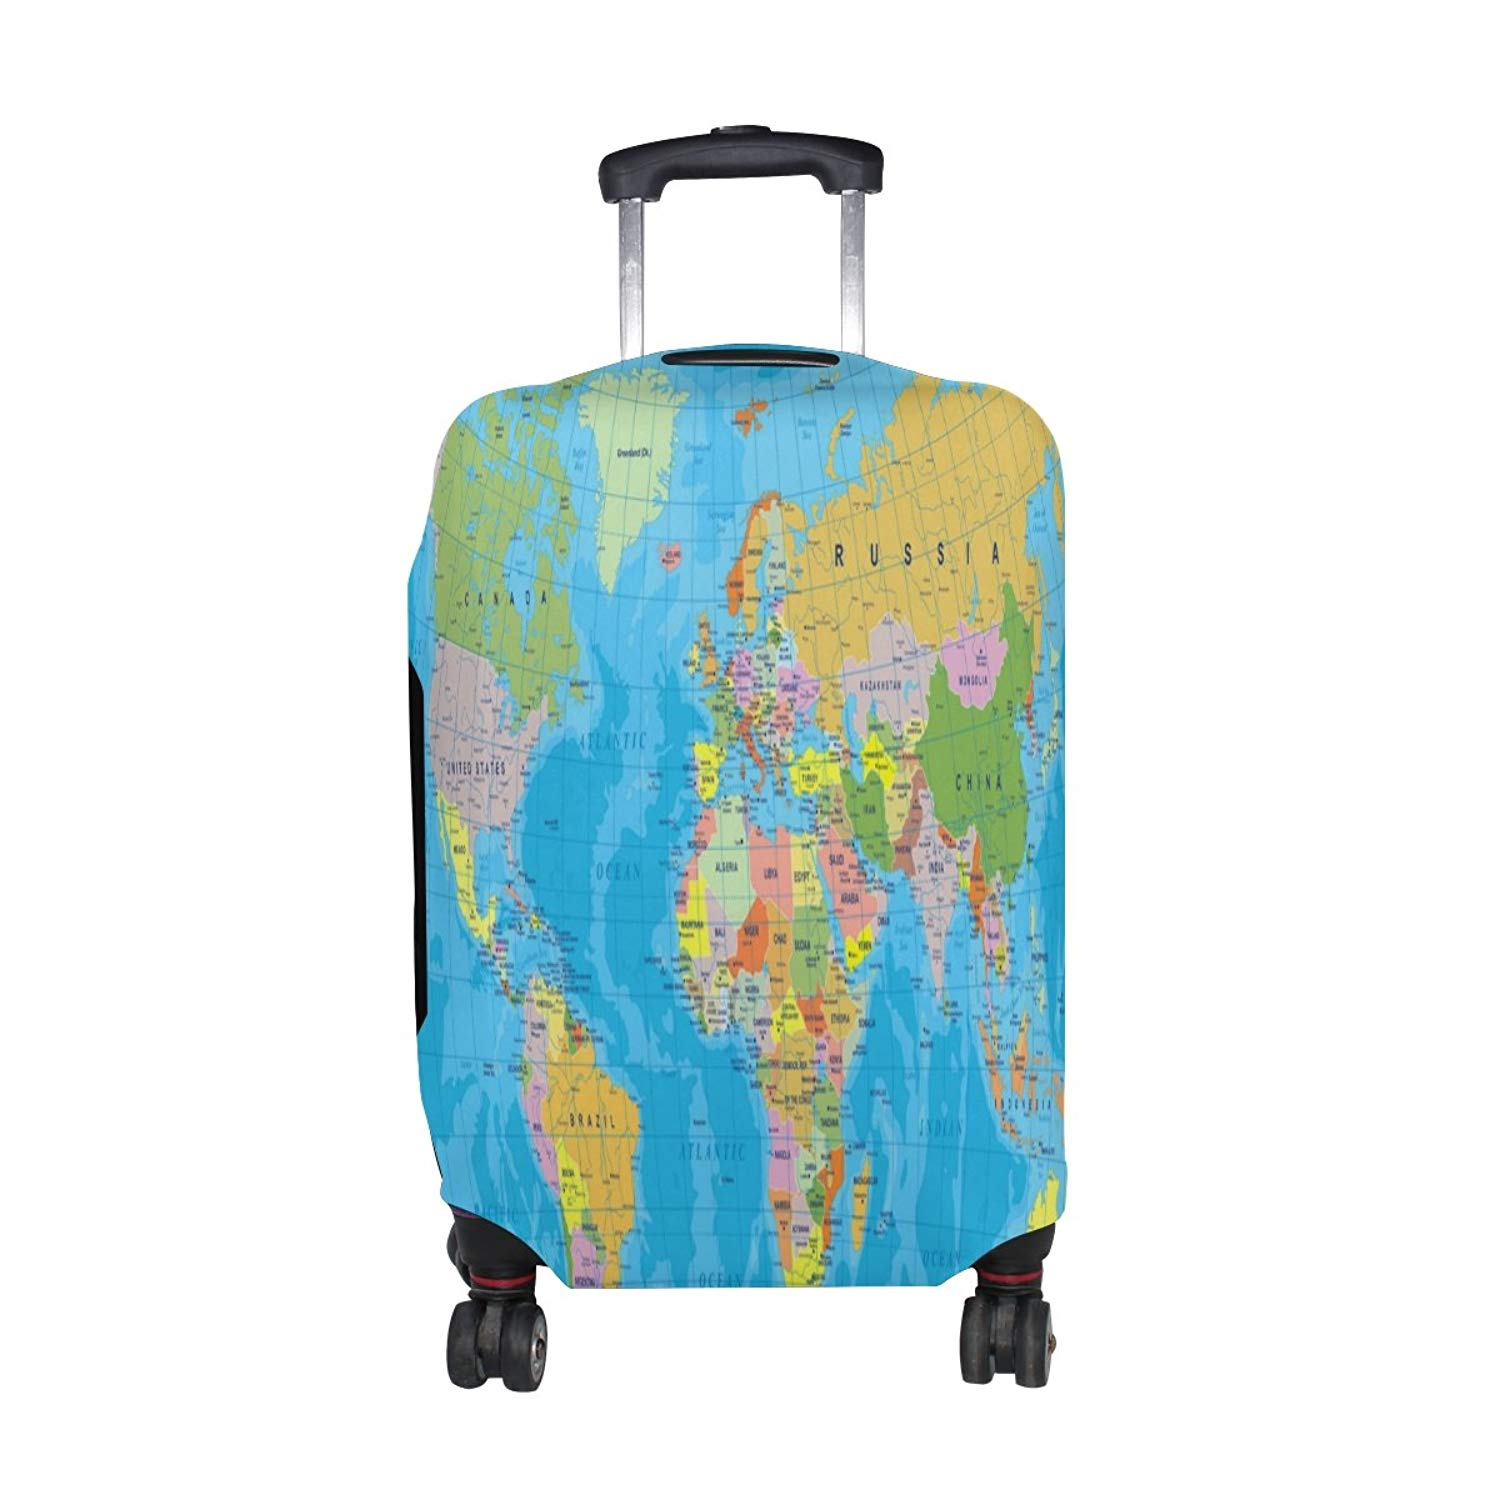 FOLPPLY Soccer Ball Pattern Luggage Cover Baggage Suitcase Travel Protector Fit for 18-32 Inch